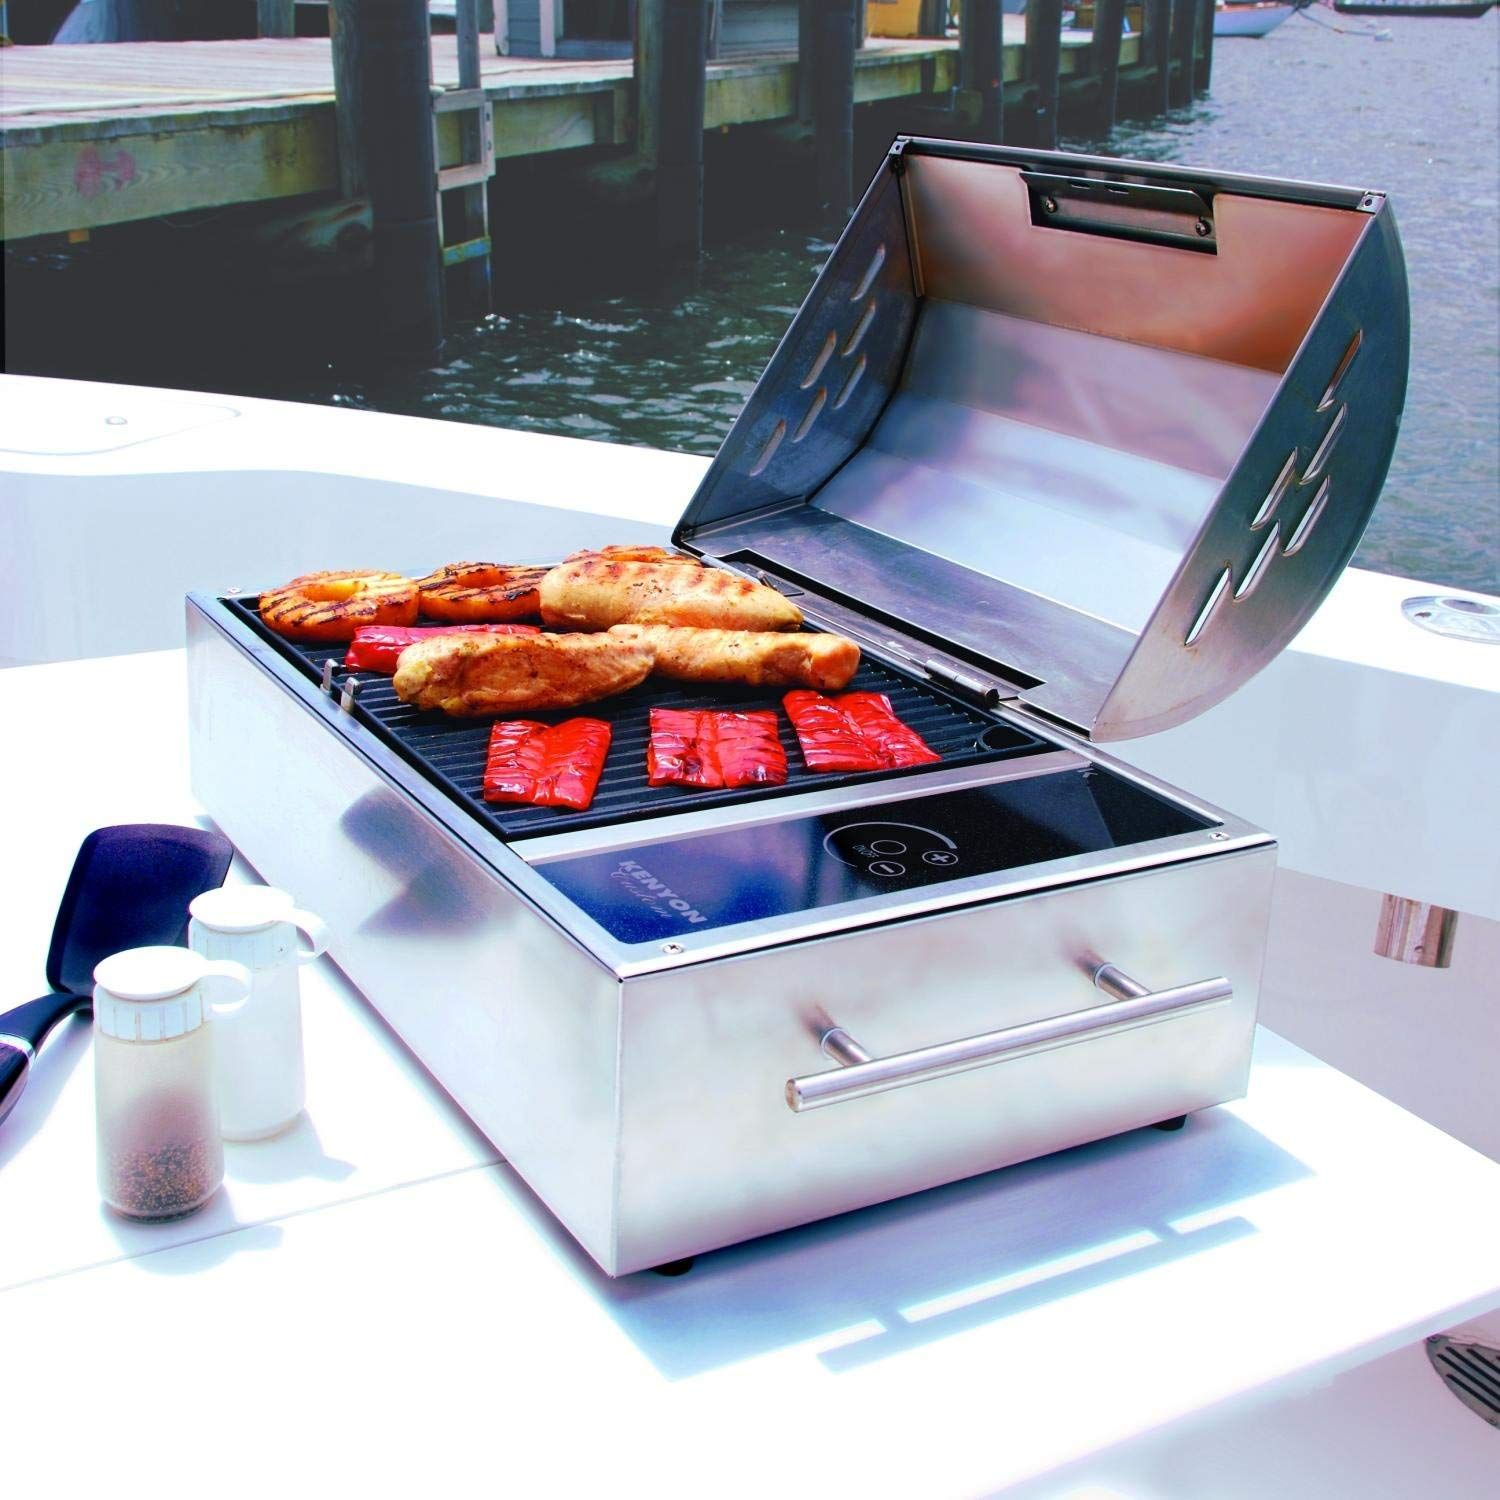 The Floridian Portable Electric Grill By Kenyon Offers Users An